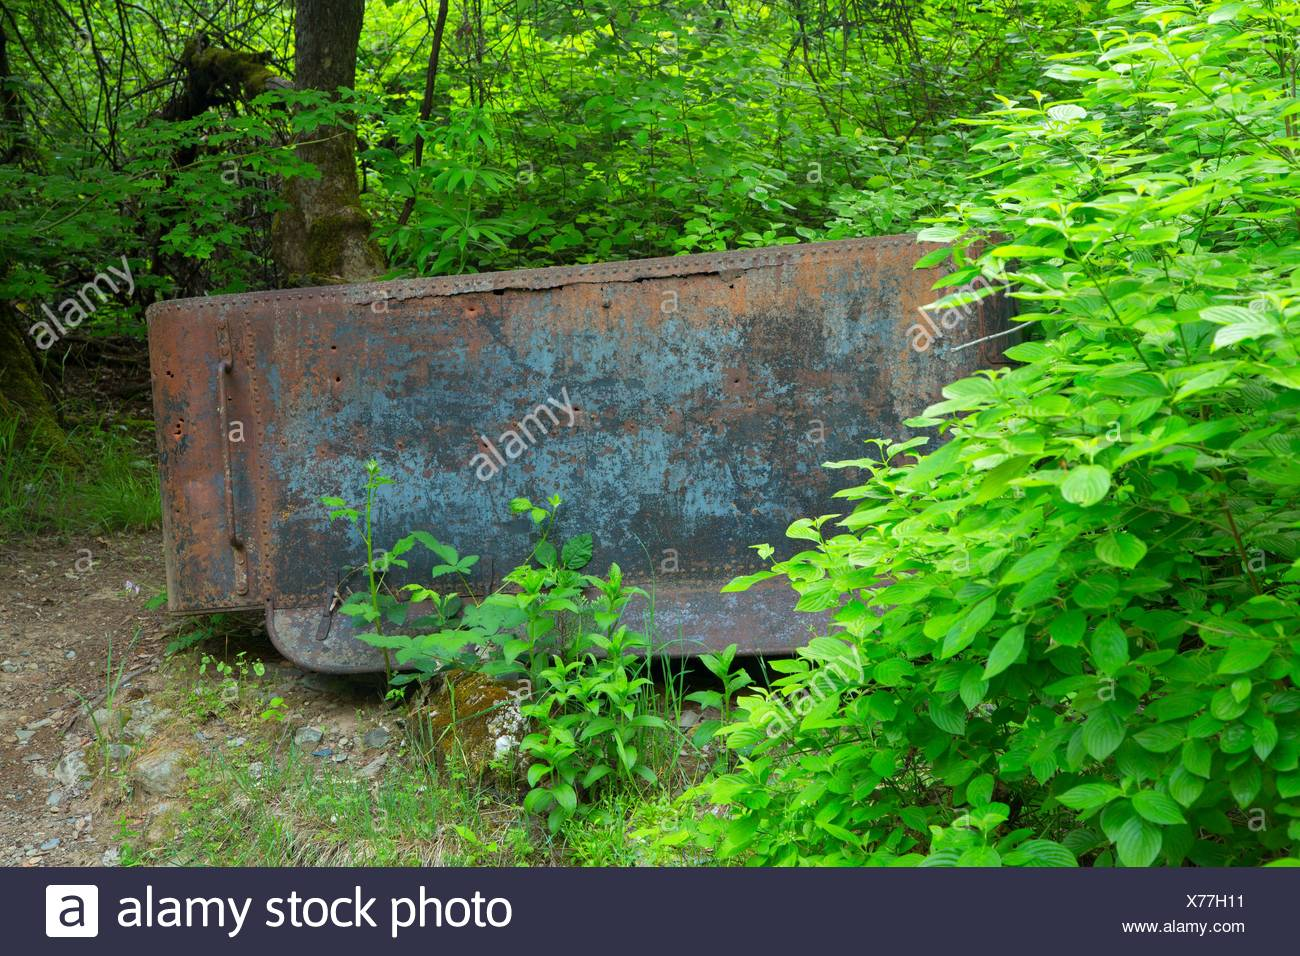 Water tank at Sims Flat Campground, Shasta-Trinity National Forest, California. - Stock Image